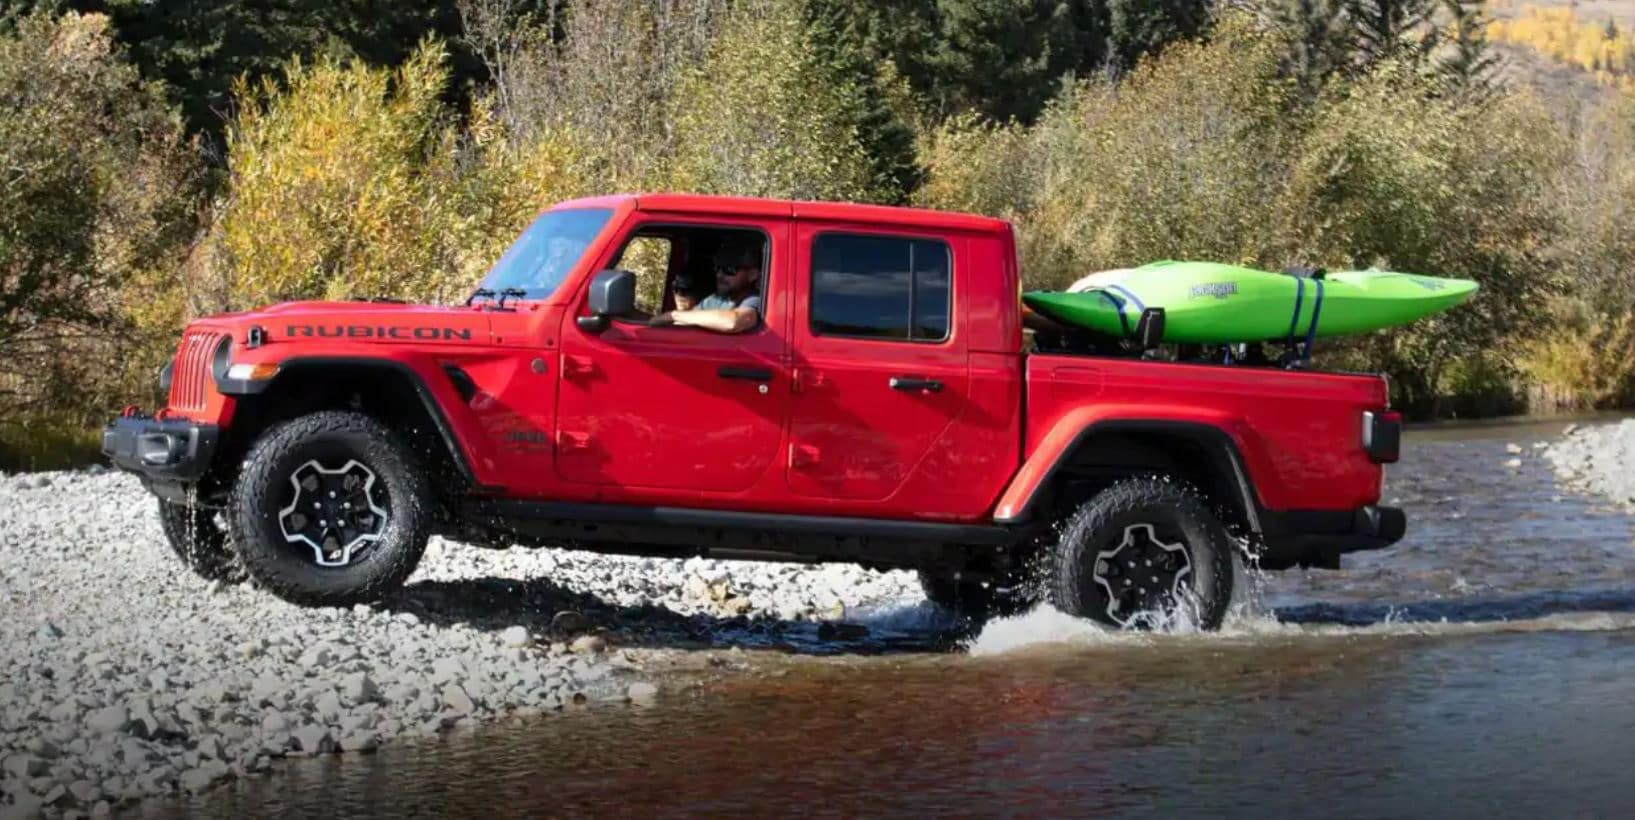 2020 Jeep Gladiator in water